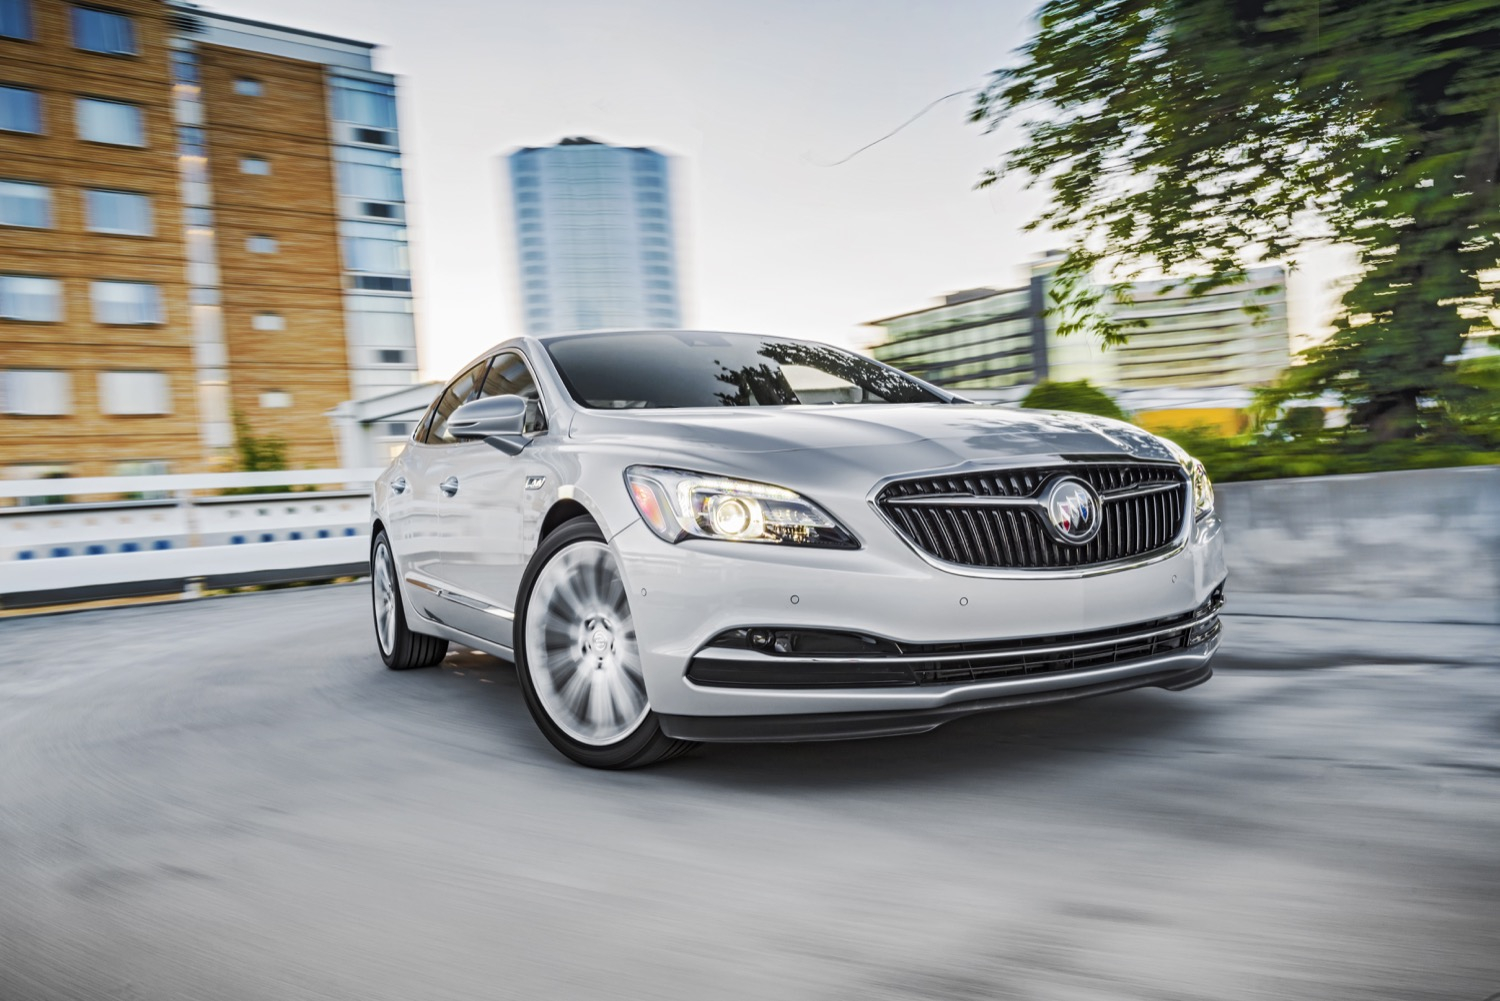 Buick Lacrosse Discount Totals $9,000 February 2020 | Gm New 2022 Buick Lacrosse Lease, Reviews, Msrp